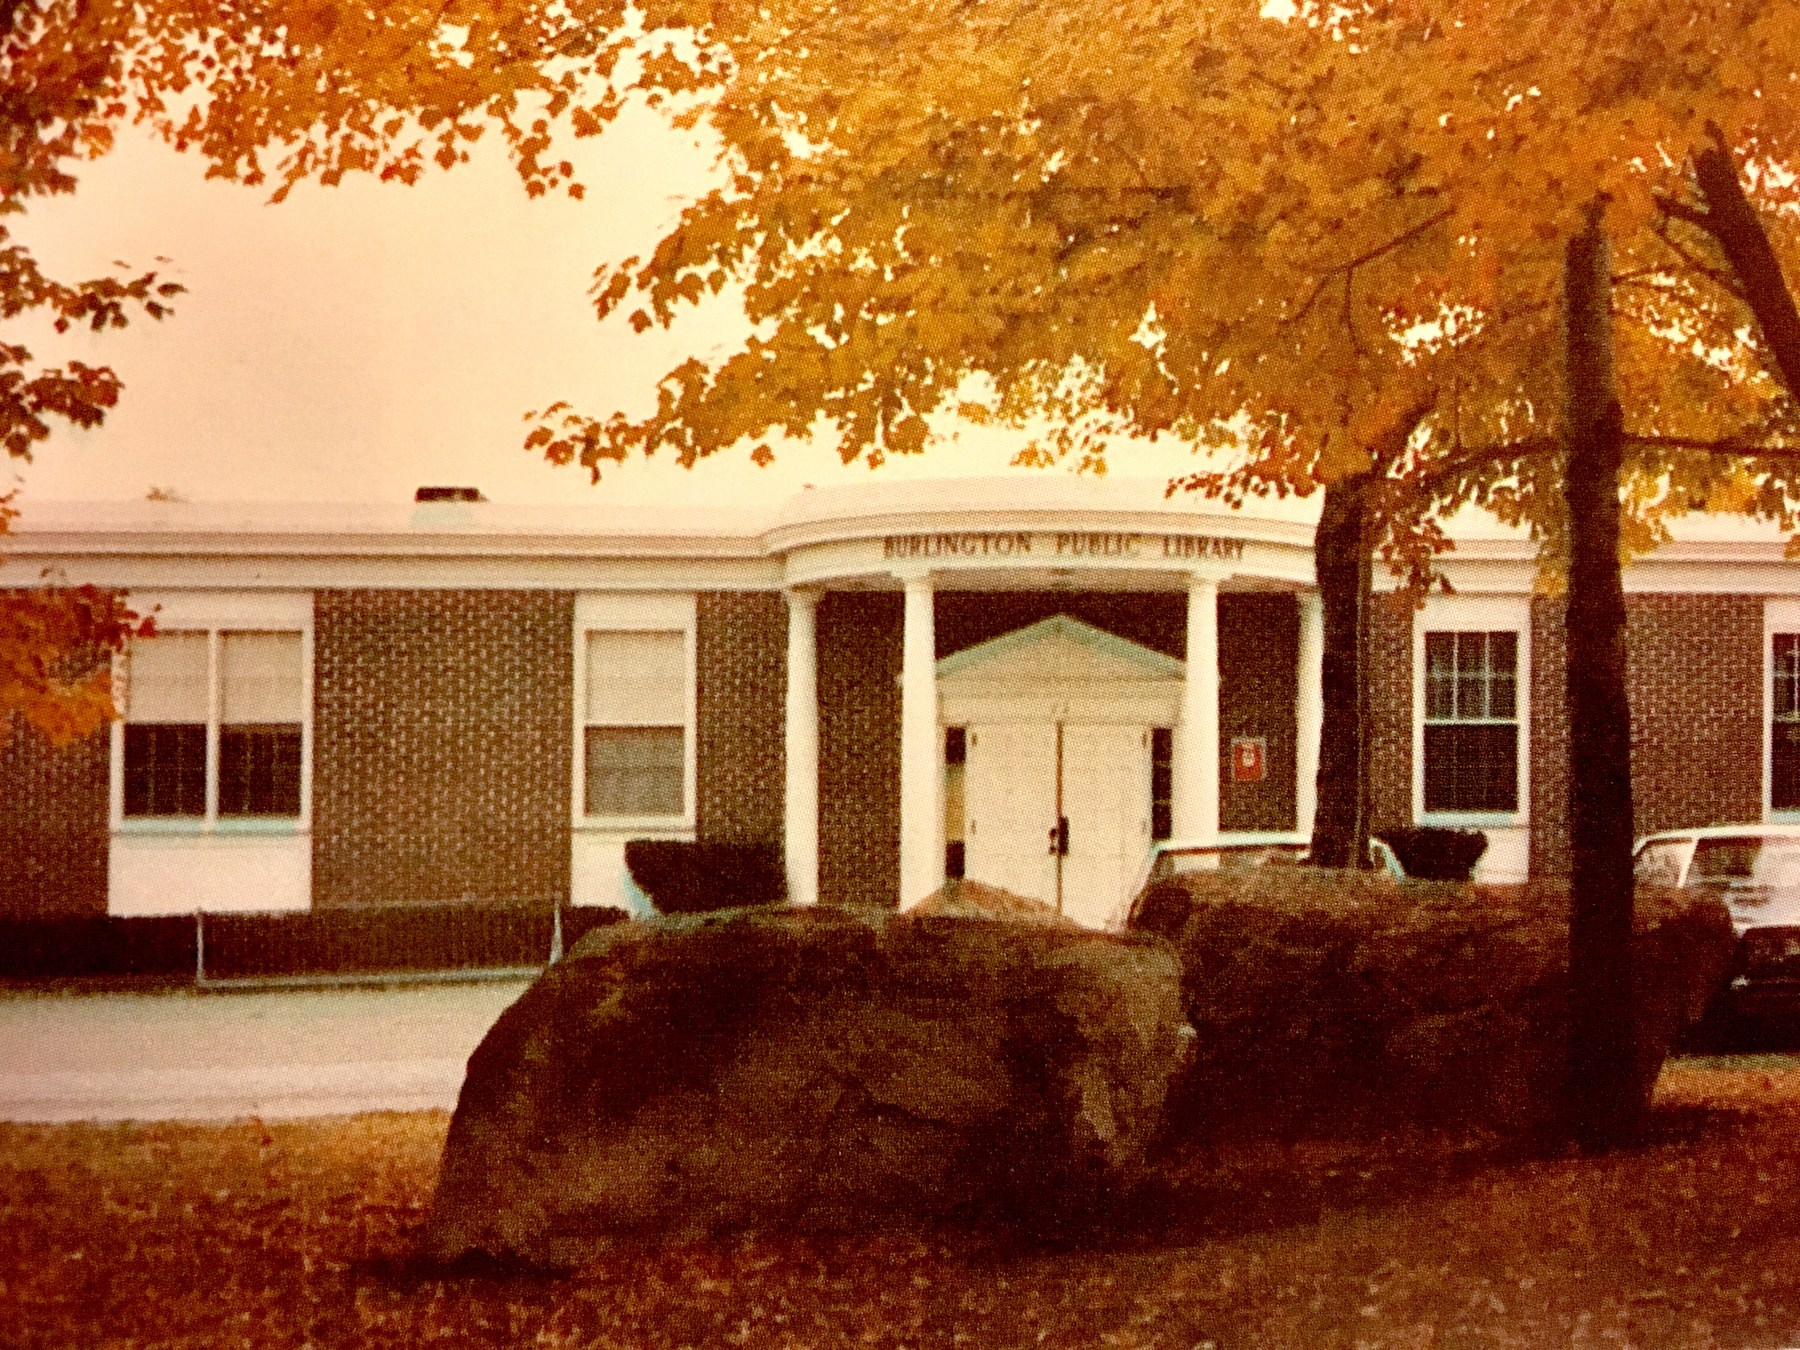 One-floor Burlington Public Library, mid 1970s